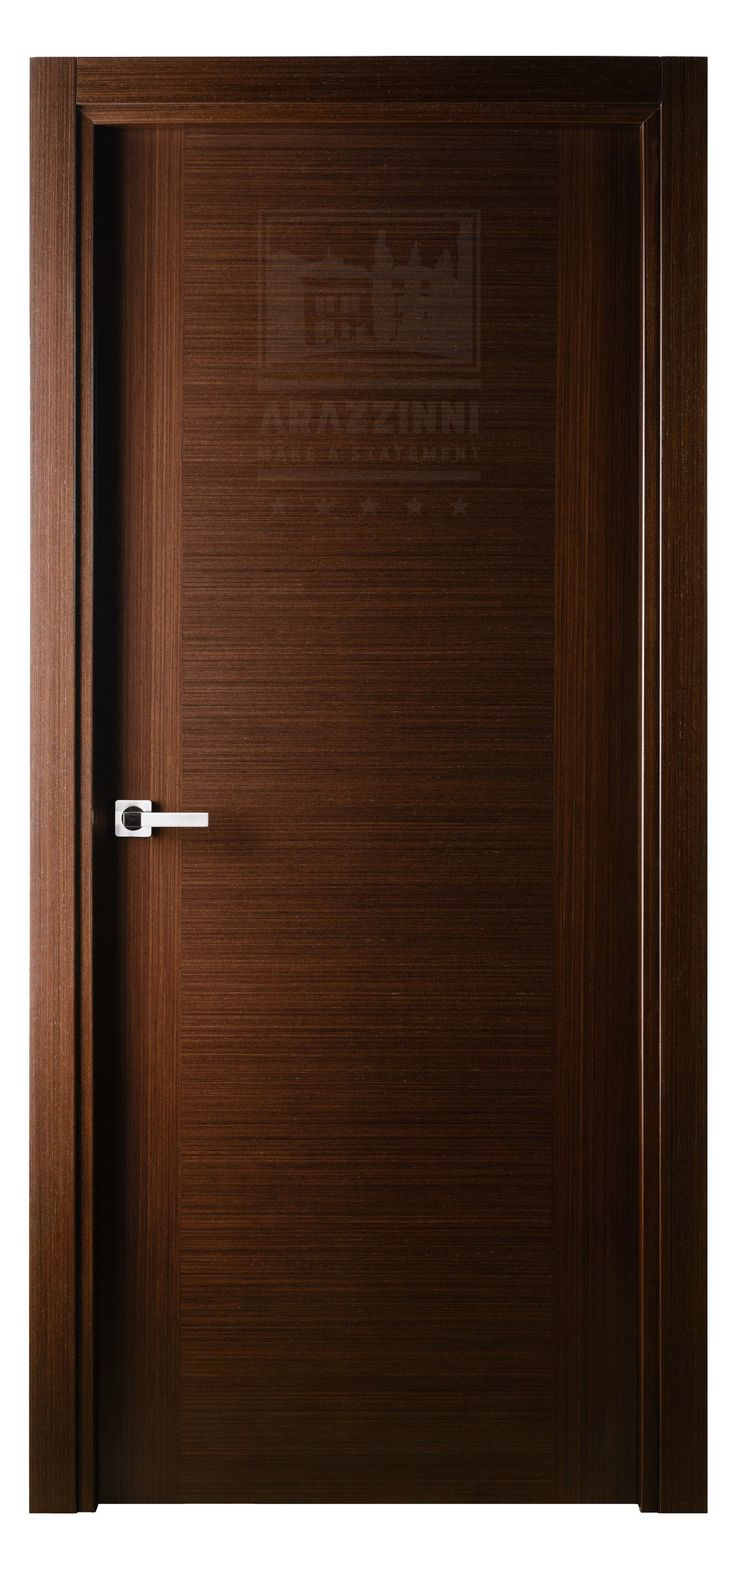 interior door texture. Versai Vetro Interior Door In Italian Wenge Finish Texture E